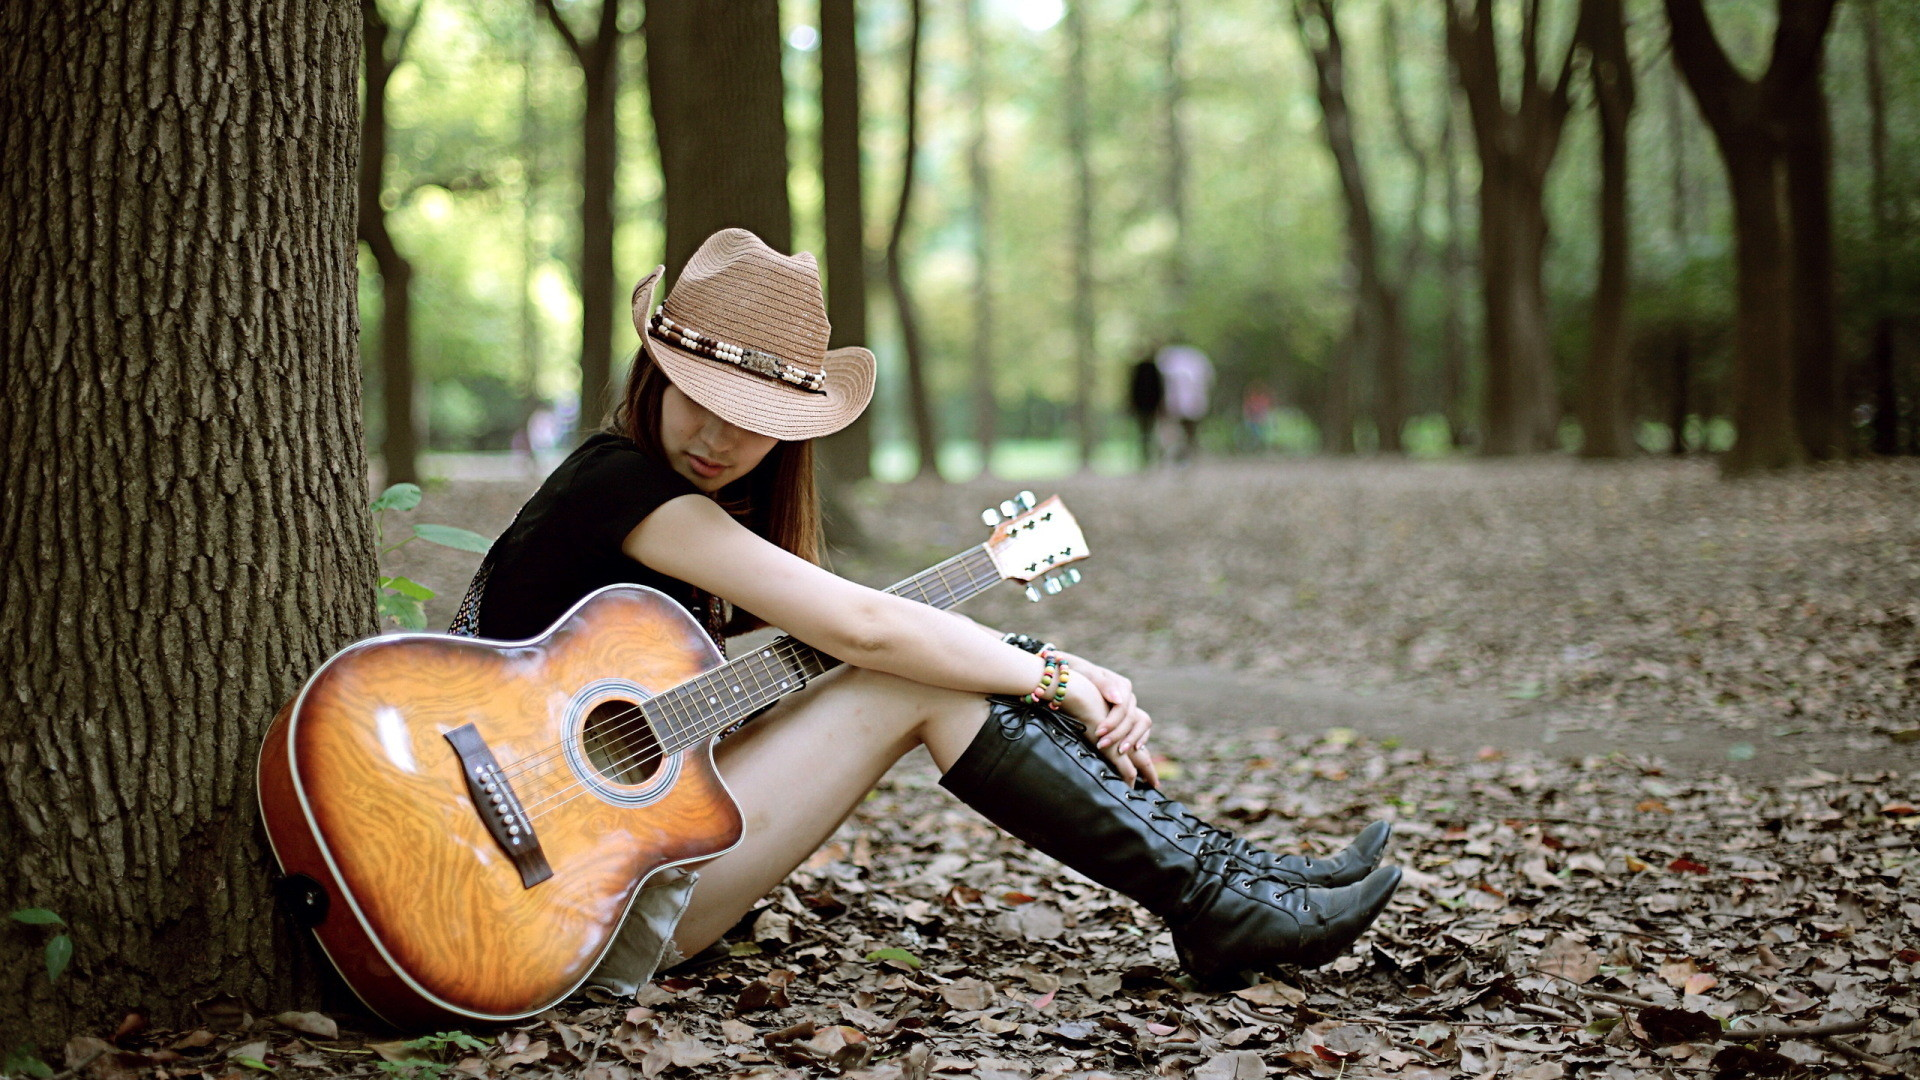 1920x1080 Guitar Girl Background Wallpapers 21916